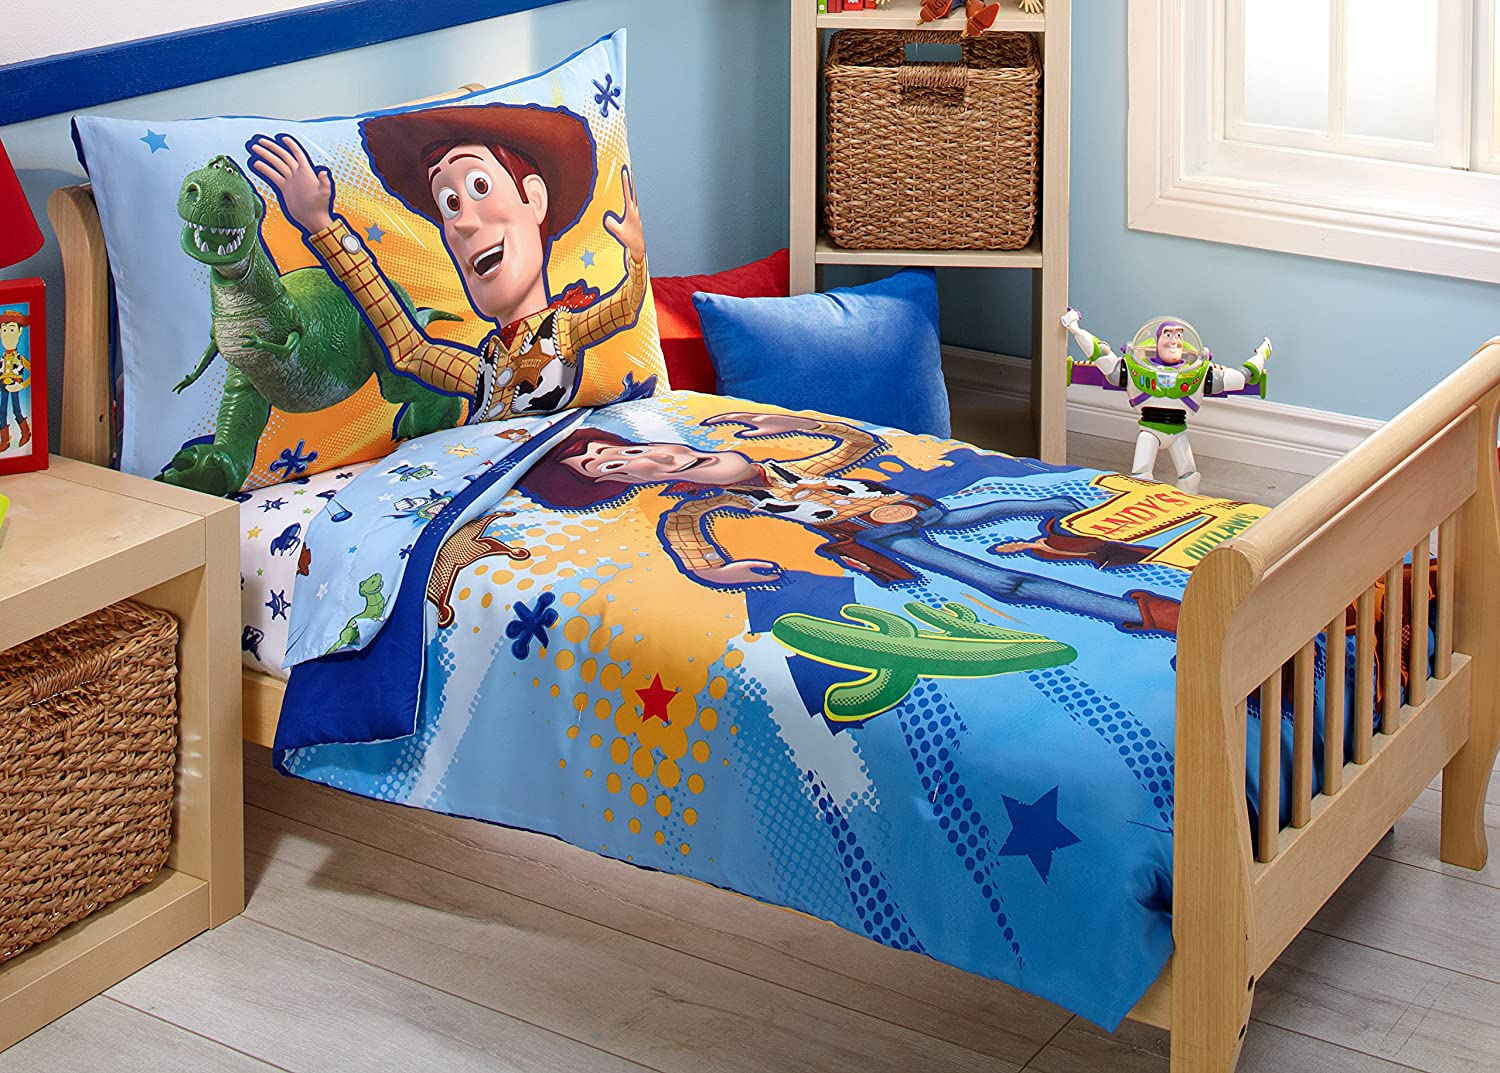 Disney Toy Story 4 Piece Toddler Bedding Set, Blue/Green Crown Crafts Inc 8006416